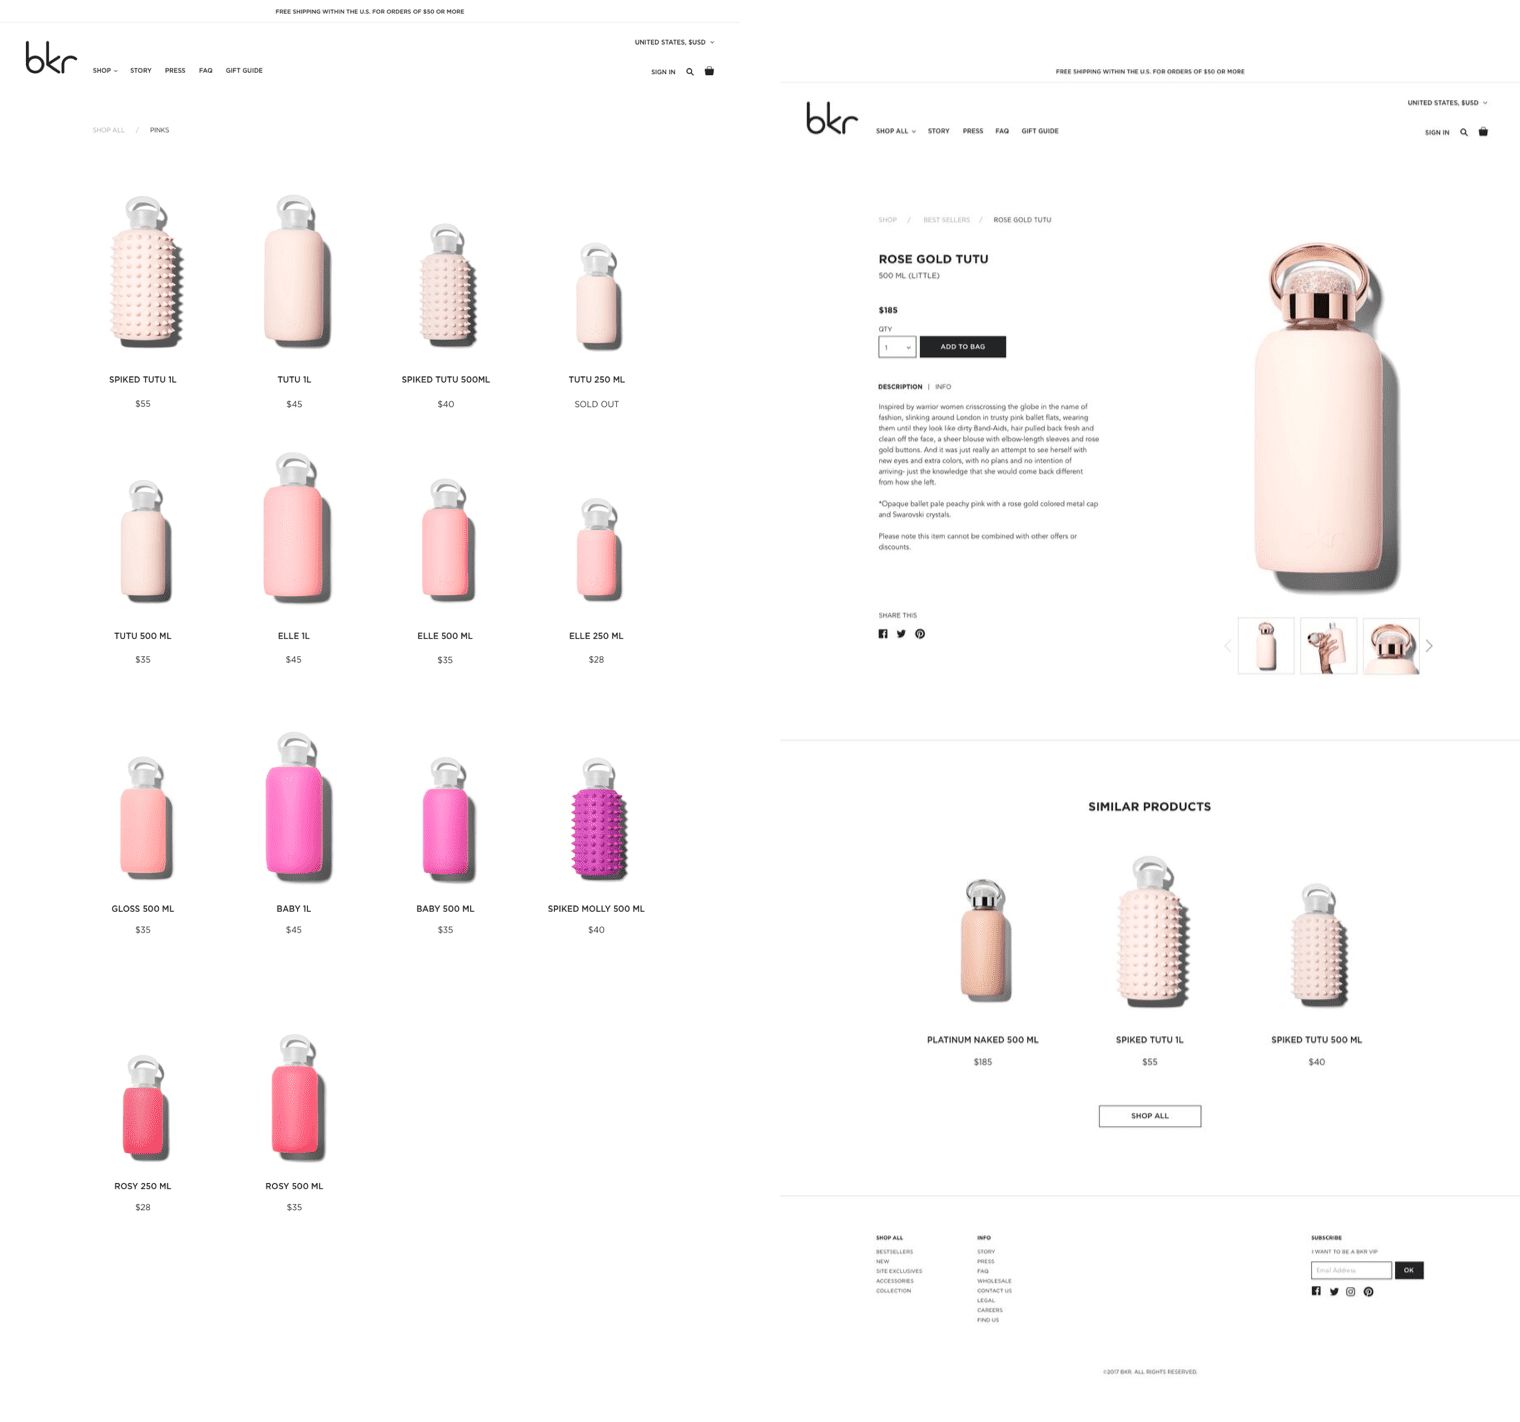 Bkr Product Pages